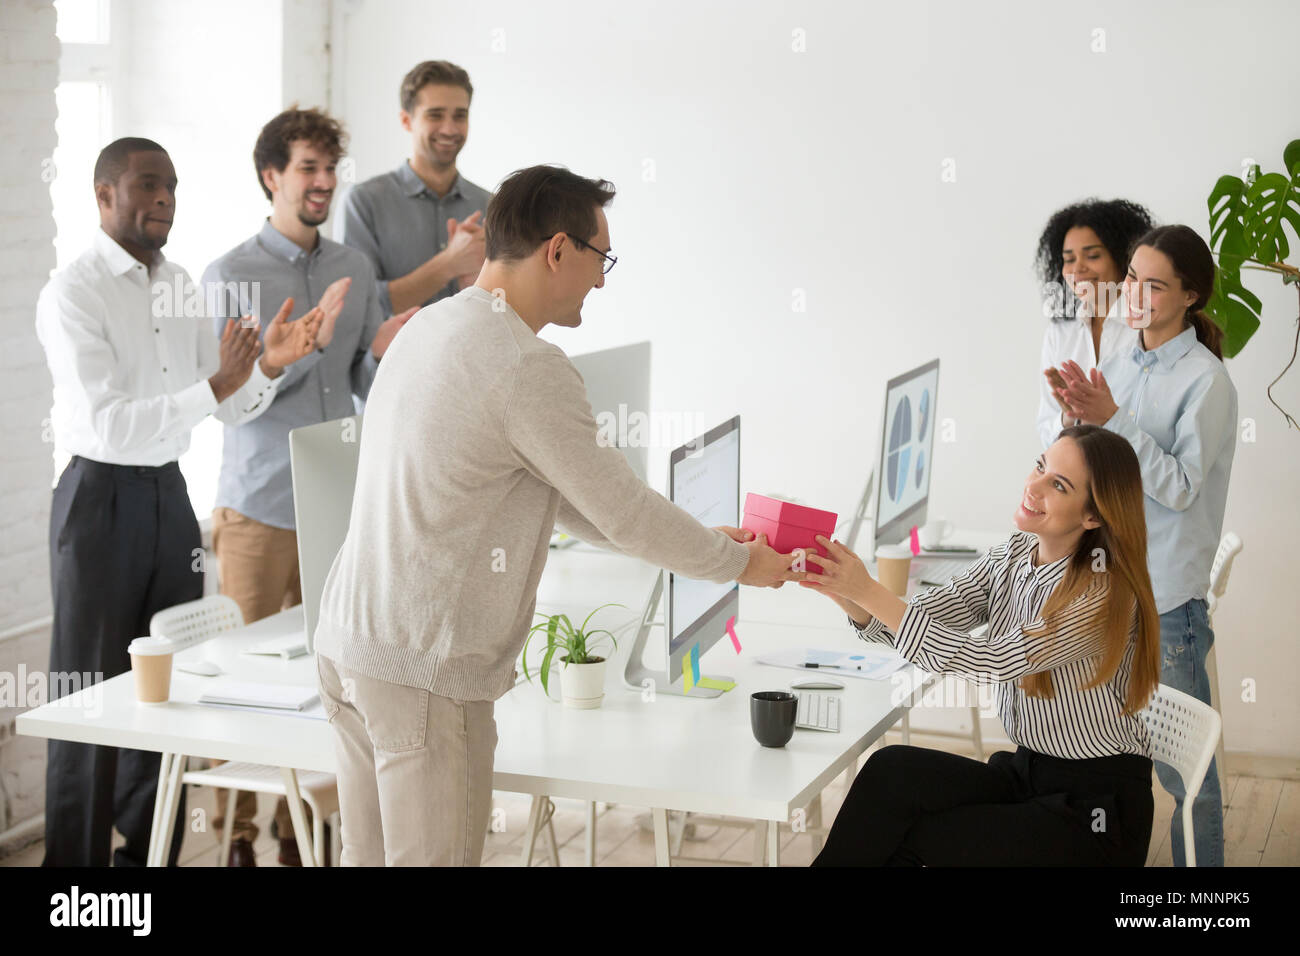 Friendly Team Congratulating Female Colleague With Birthday Gift